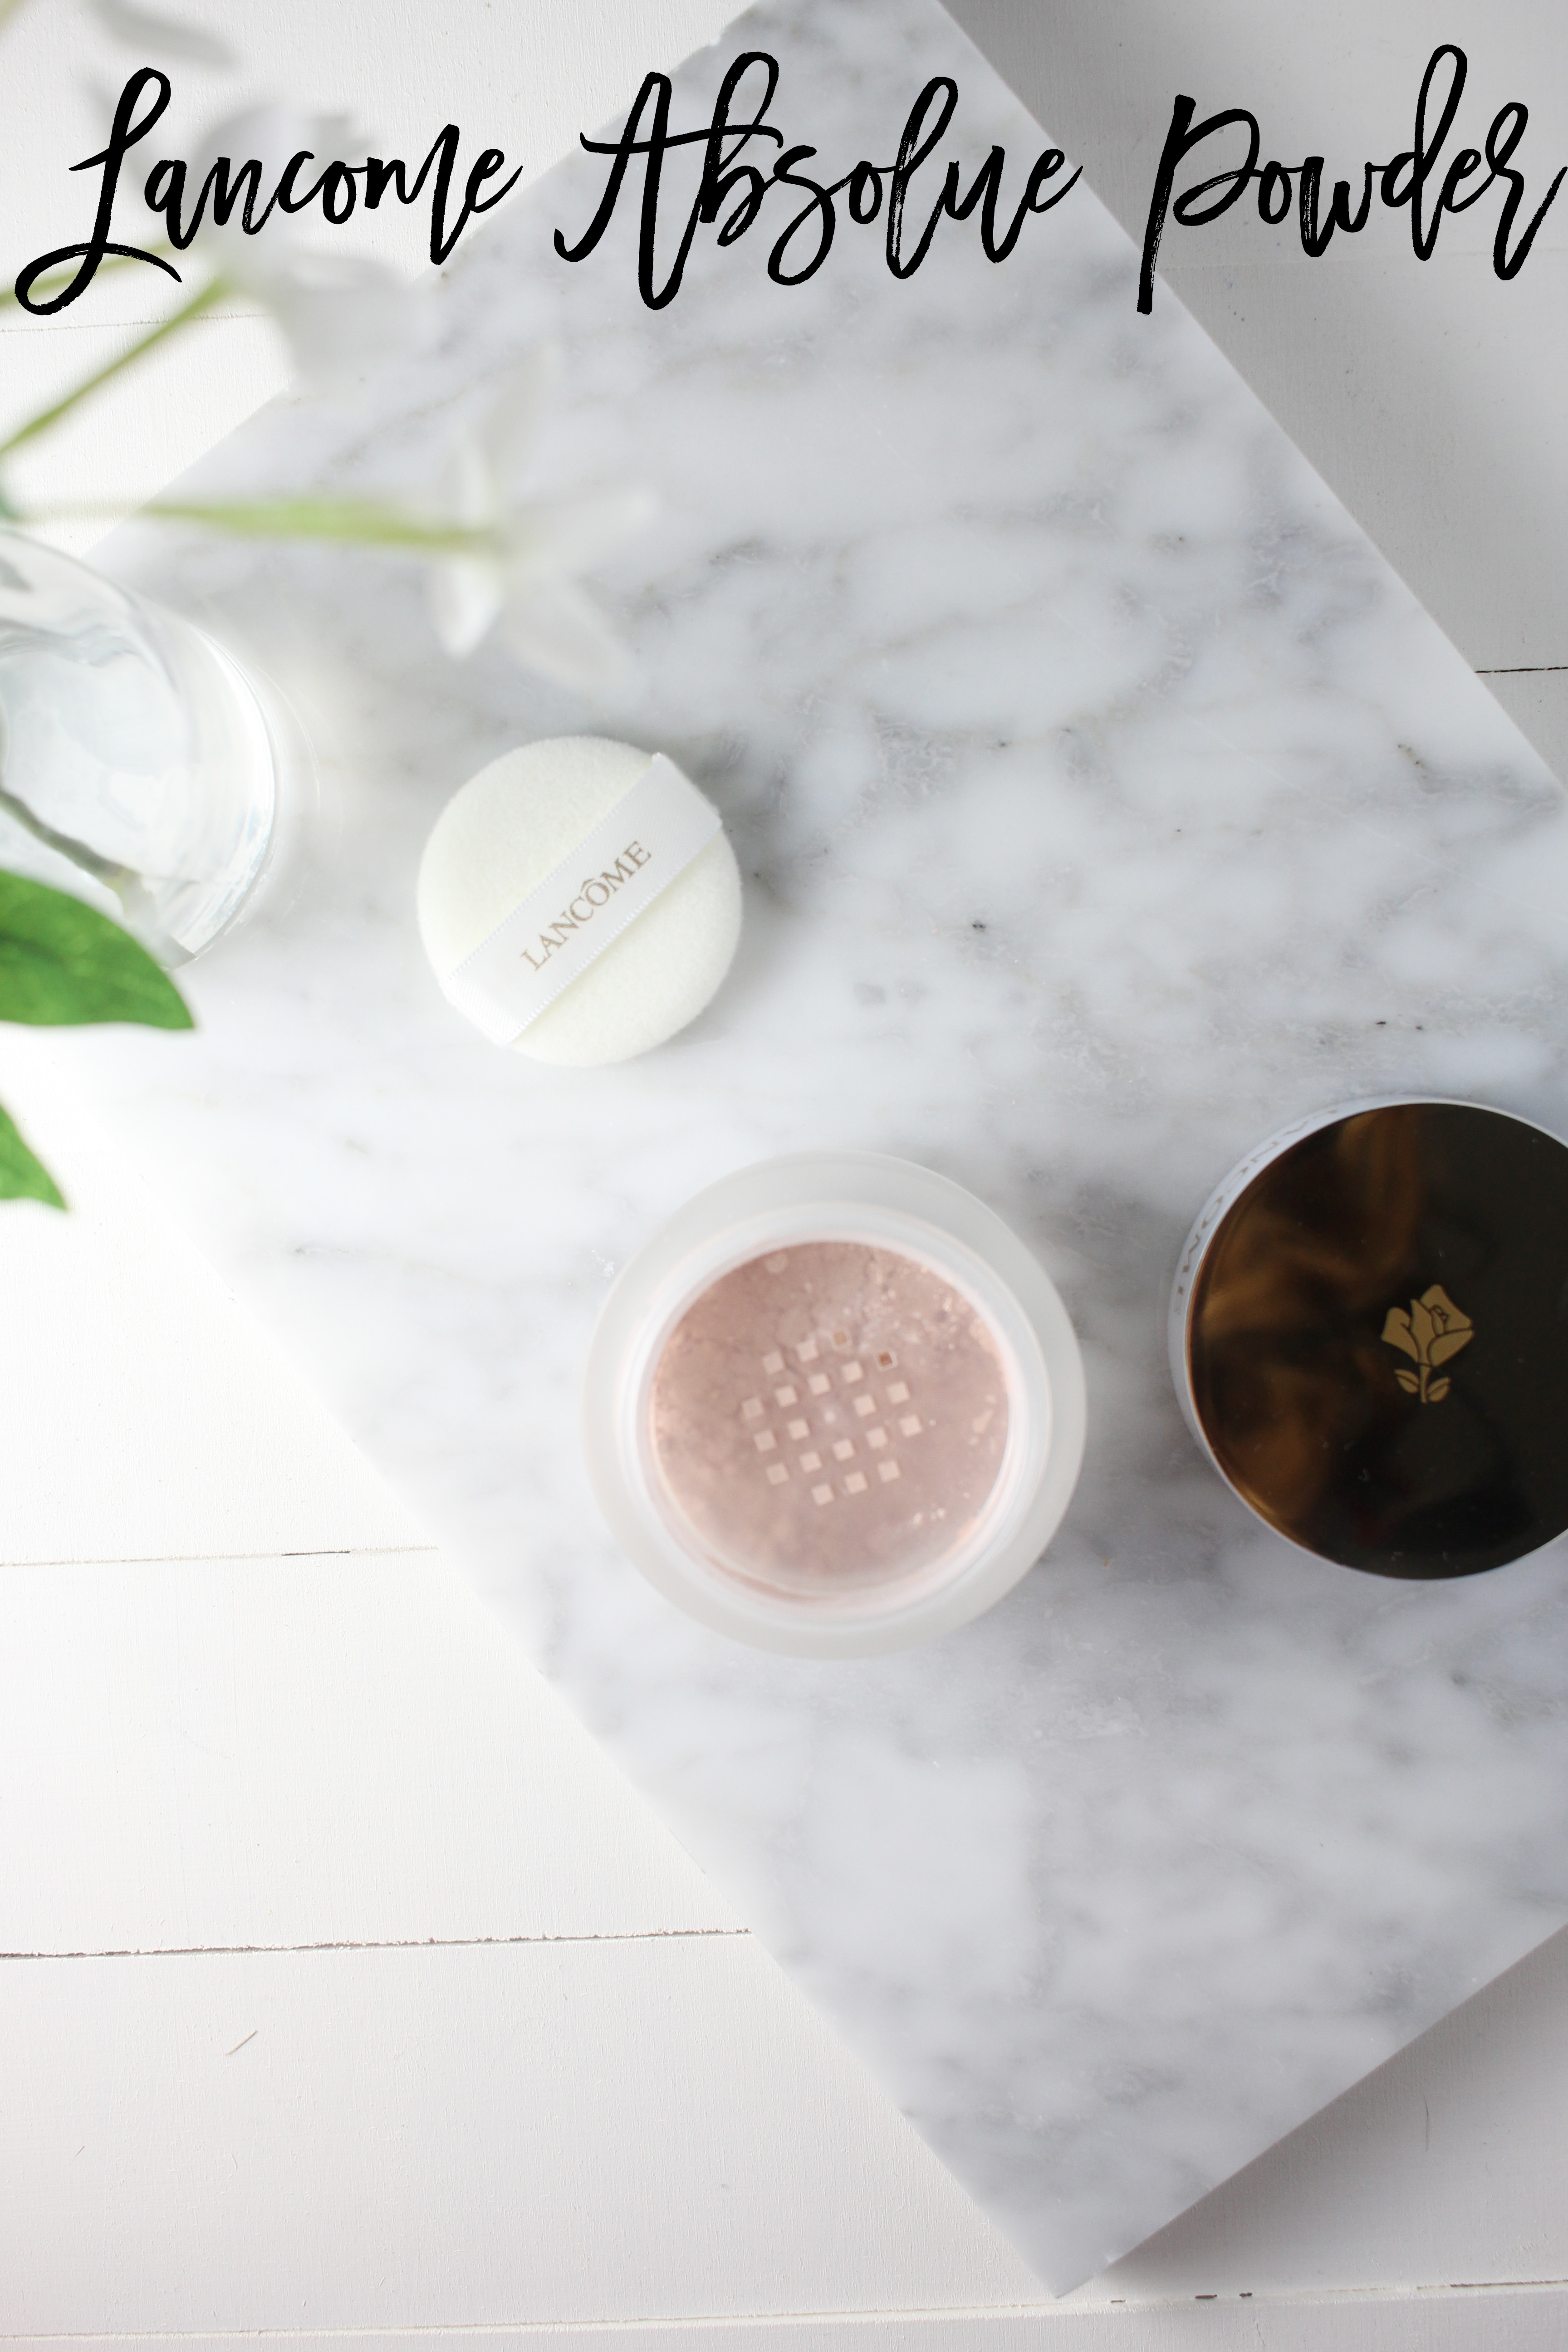 ABSOLUE POWDER Radiant Smoothing Powder Absolute pearl